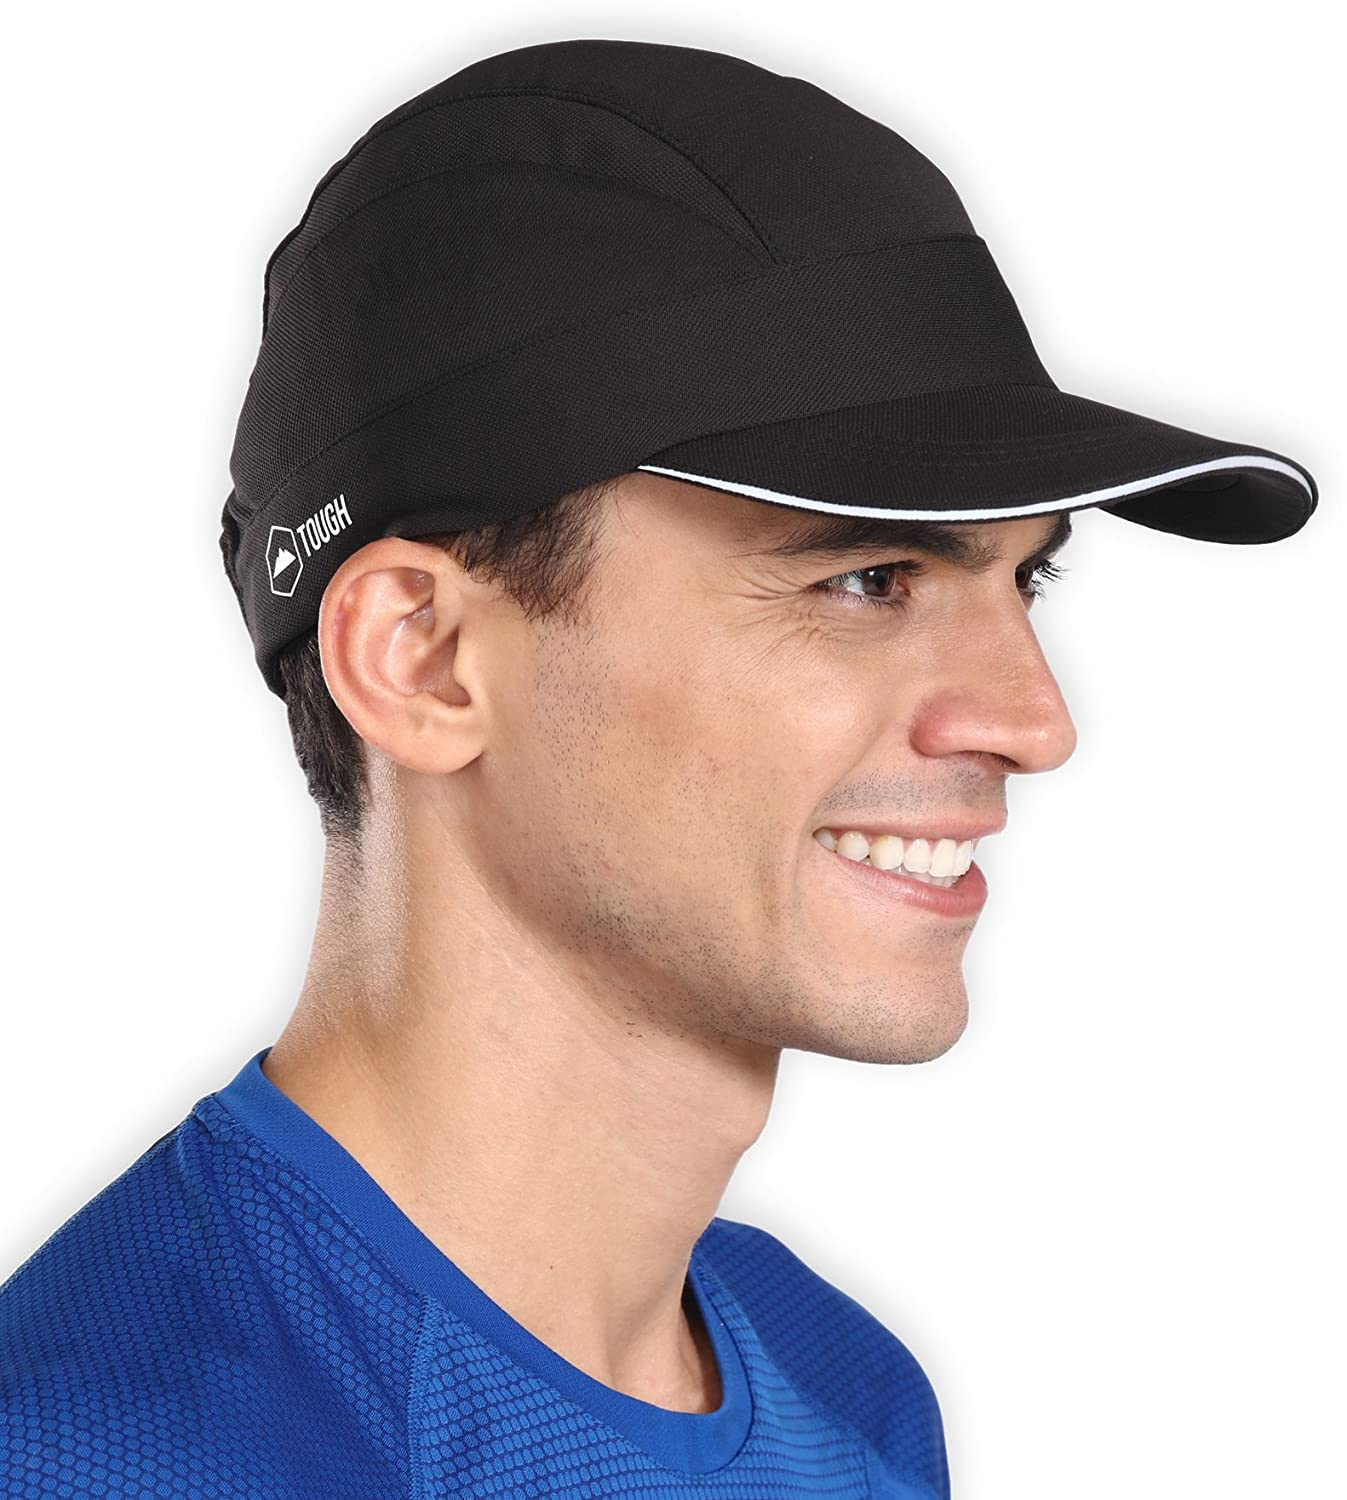 18a038842 Sweat-Wicking Running Cap - UV Protection Sports Cap with Reflective Brim -  Lightweight, Cooling & Packable Sun Hat - Ideal for Baseball, Cycling, ...